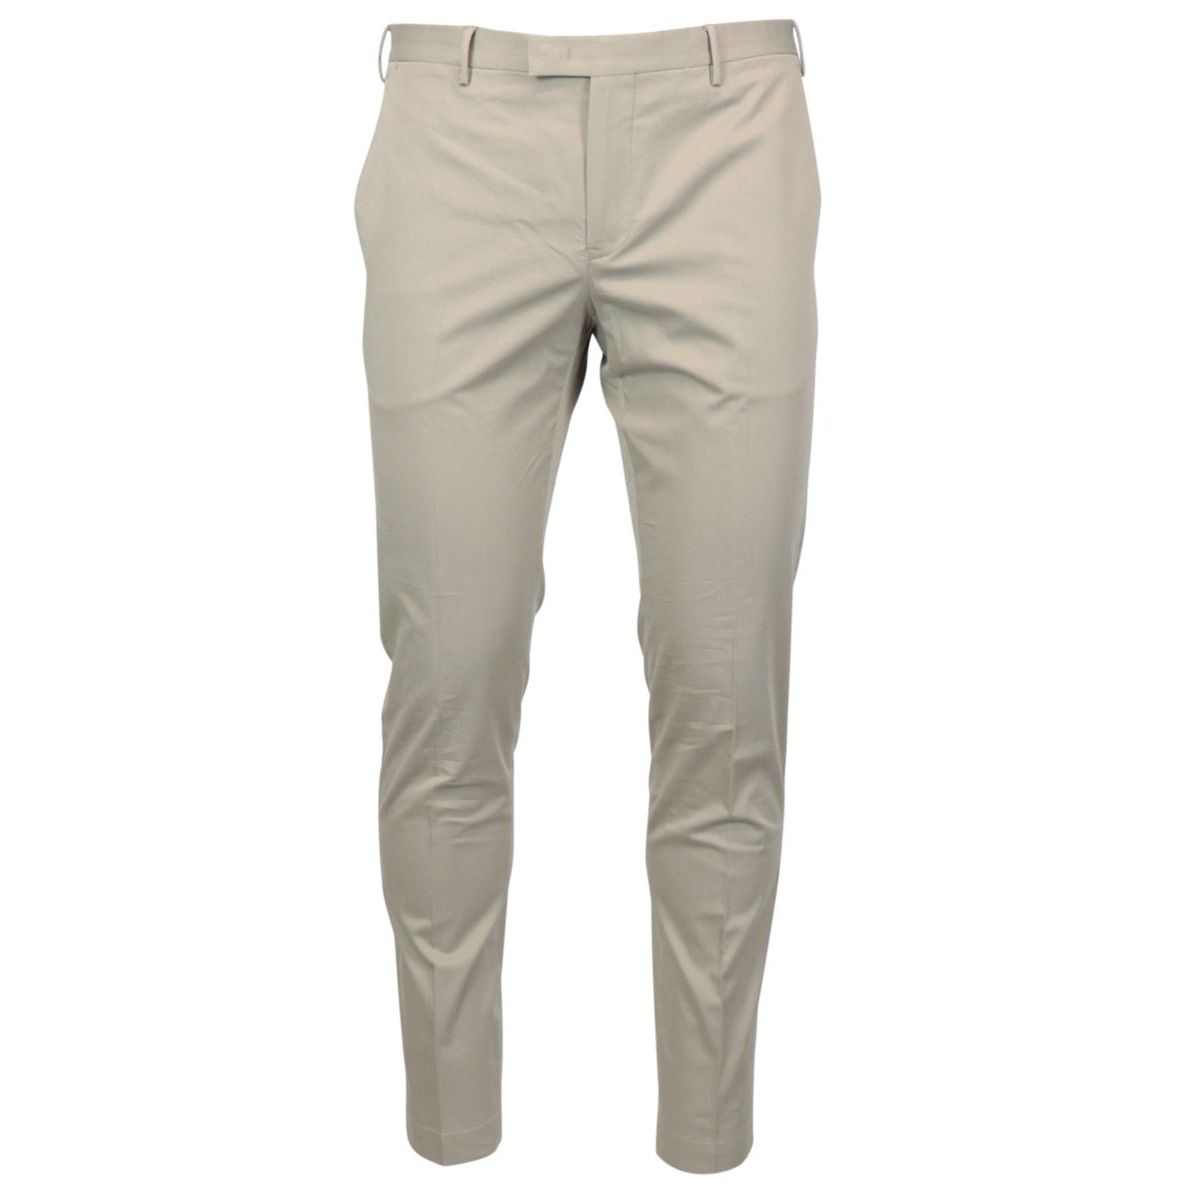 Solid color stretch cotton skinny trousers Beige PT TORINO